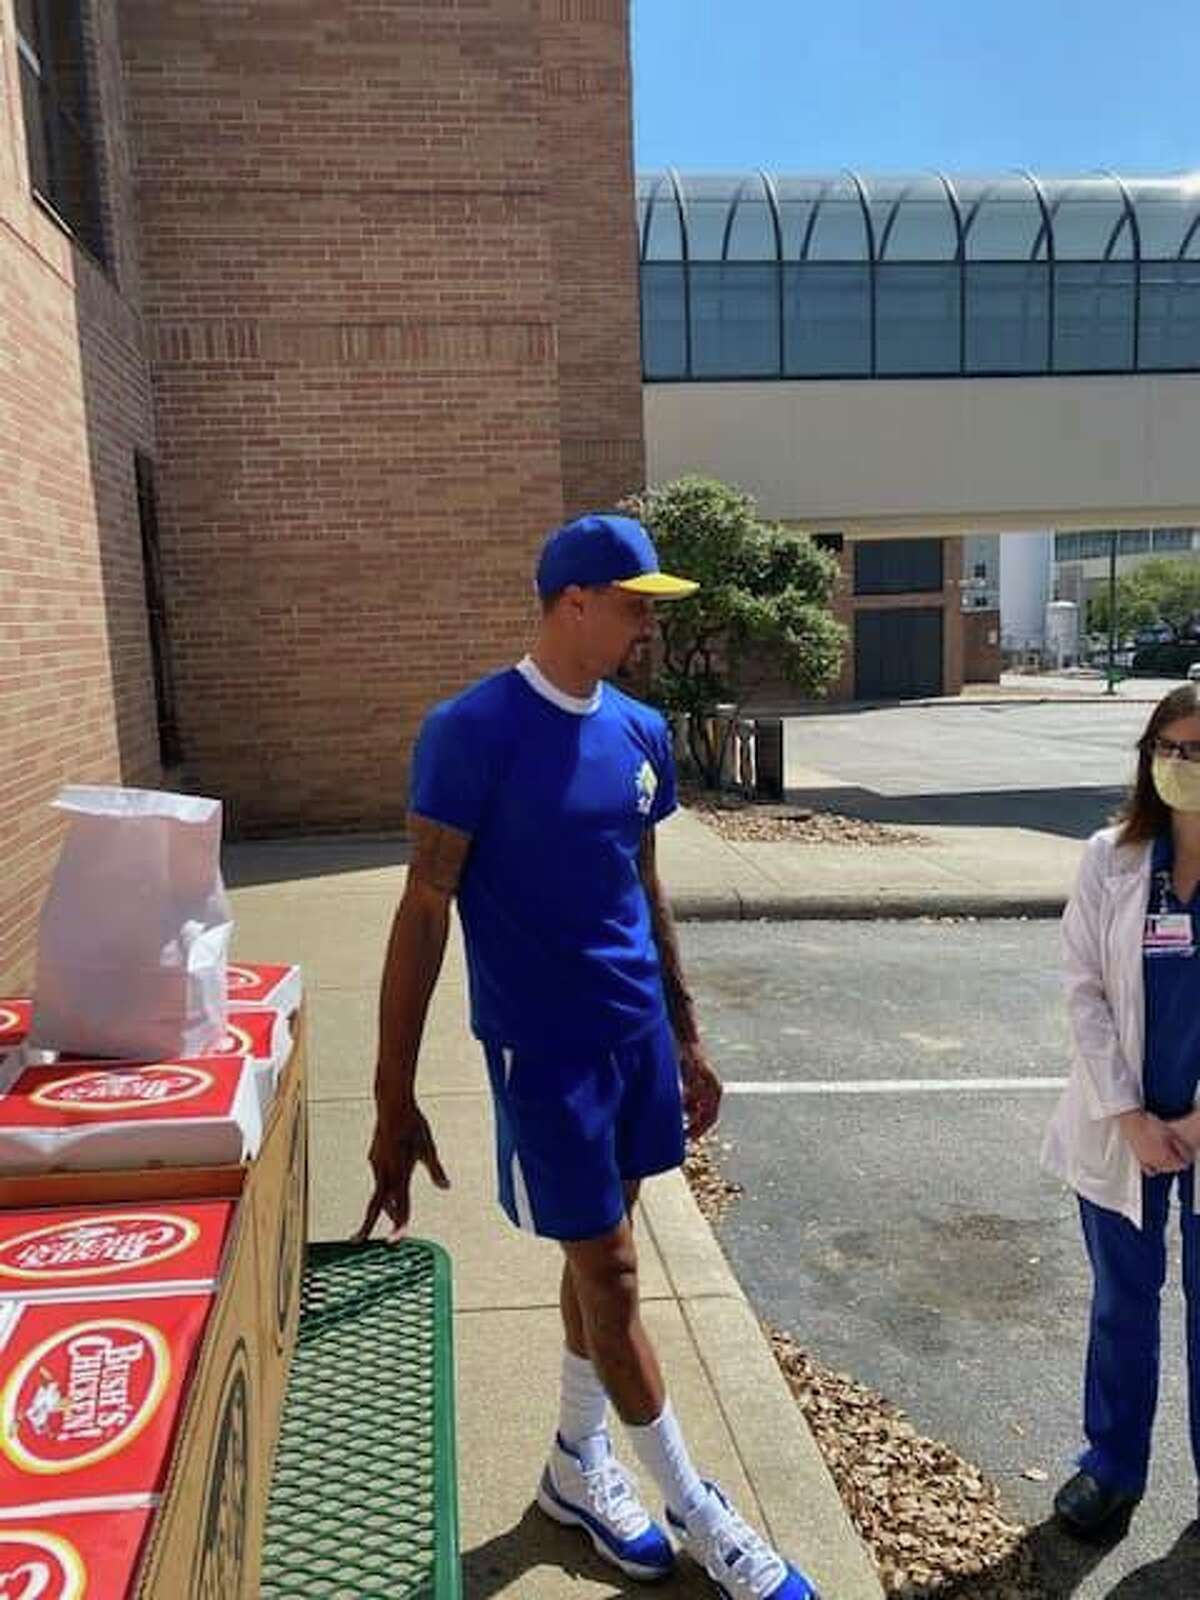 Former San Antonio Spurs player George Hill partnered with Tony Cain, owner of Bush's Chicken, to provide meals for the city's front line heroes.